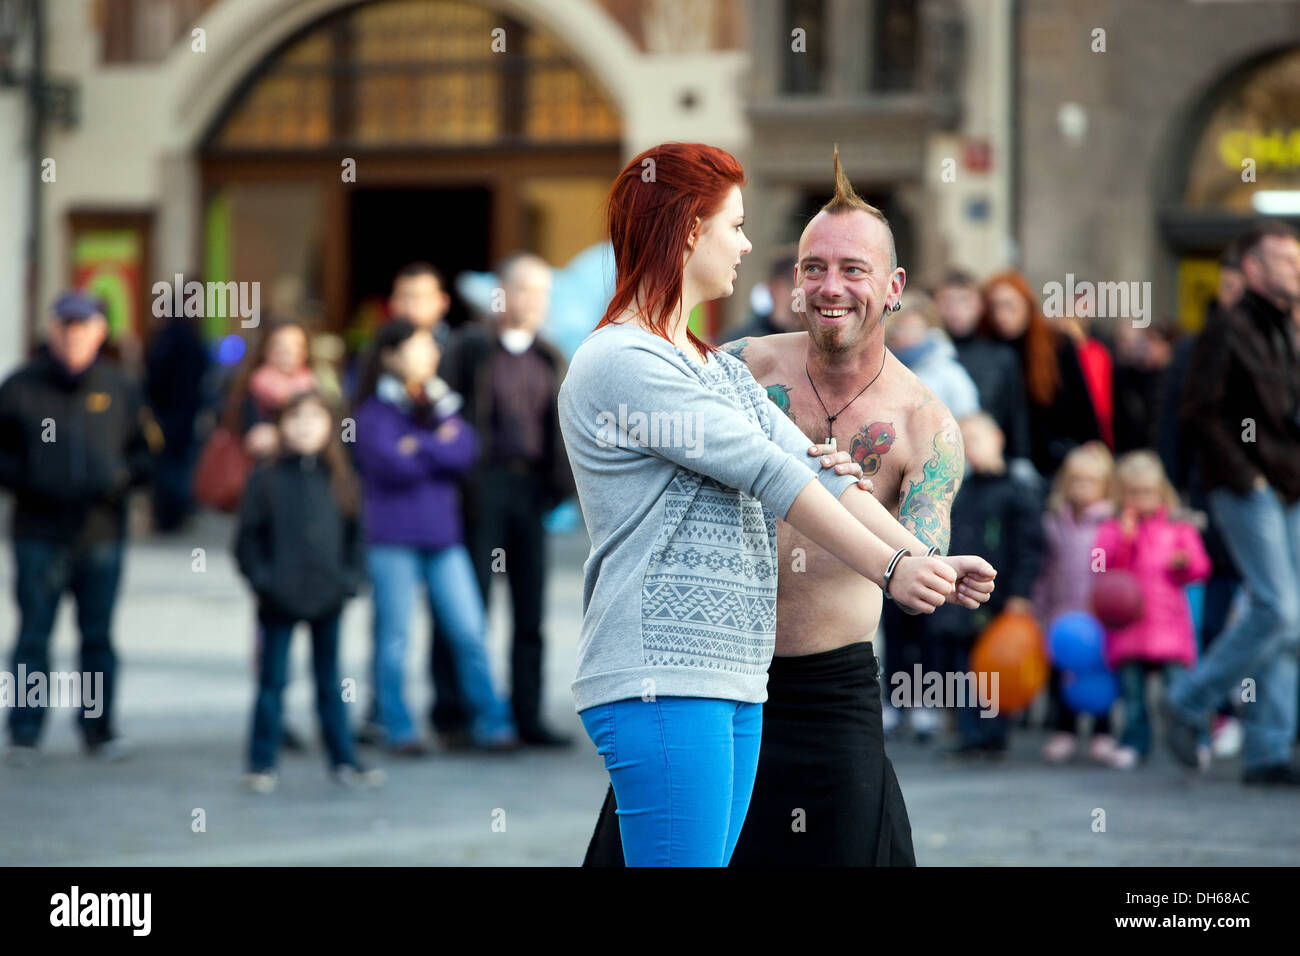 Performer on the street showing his art for people and entertain the audience Prague Old Town Square Czech Republic, Stock Photo